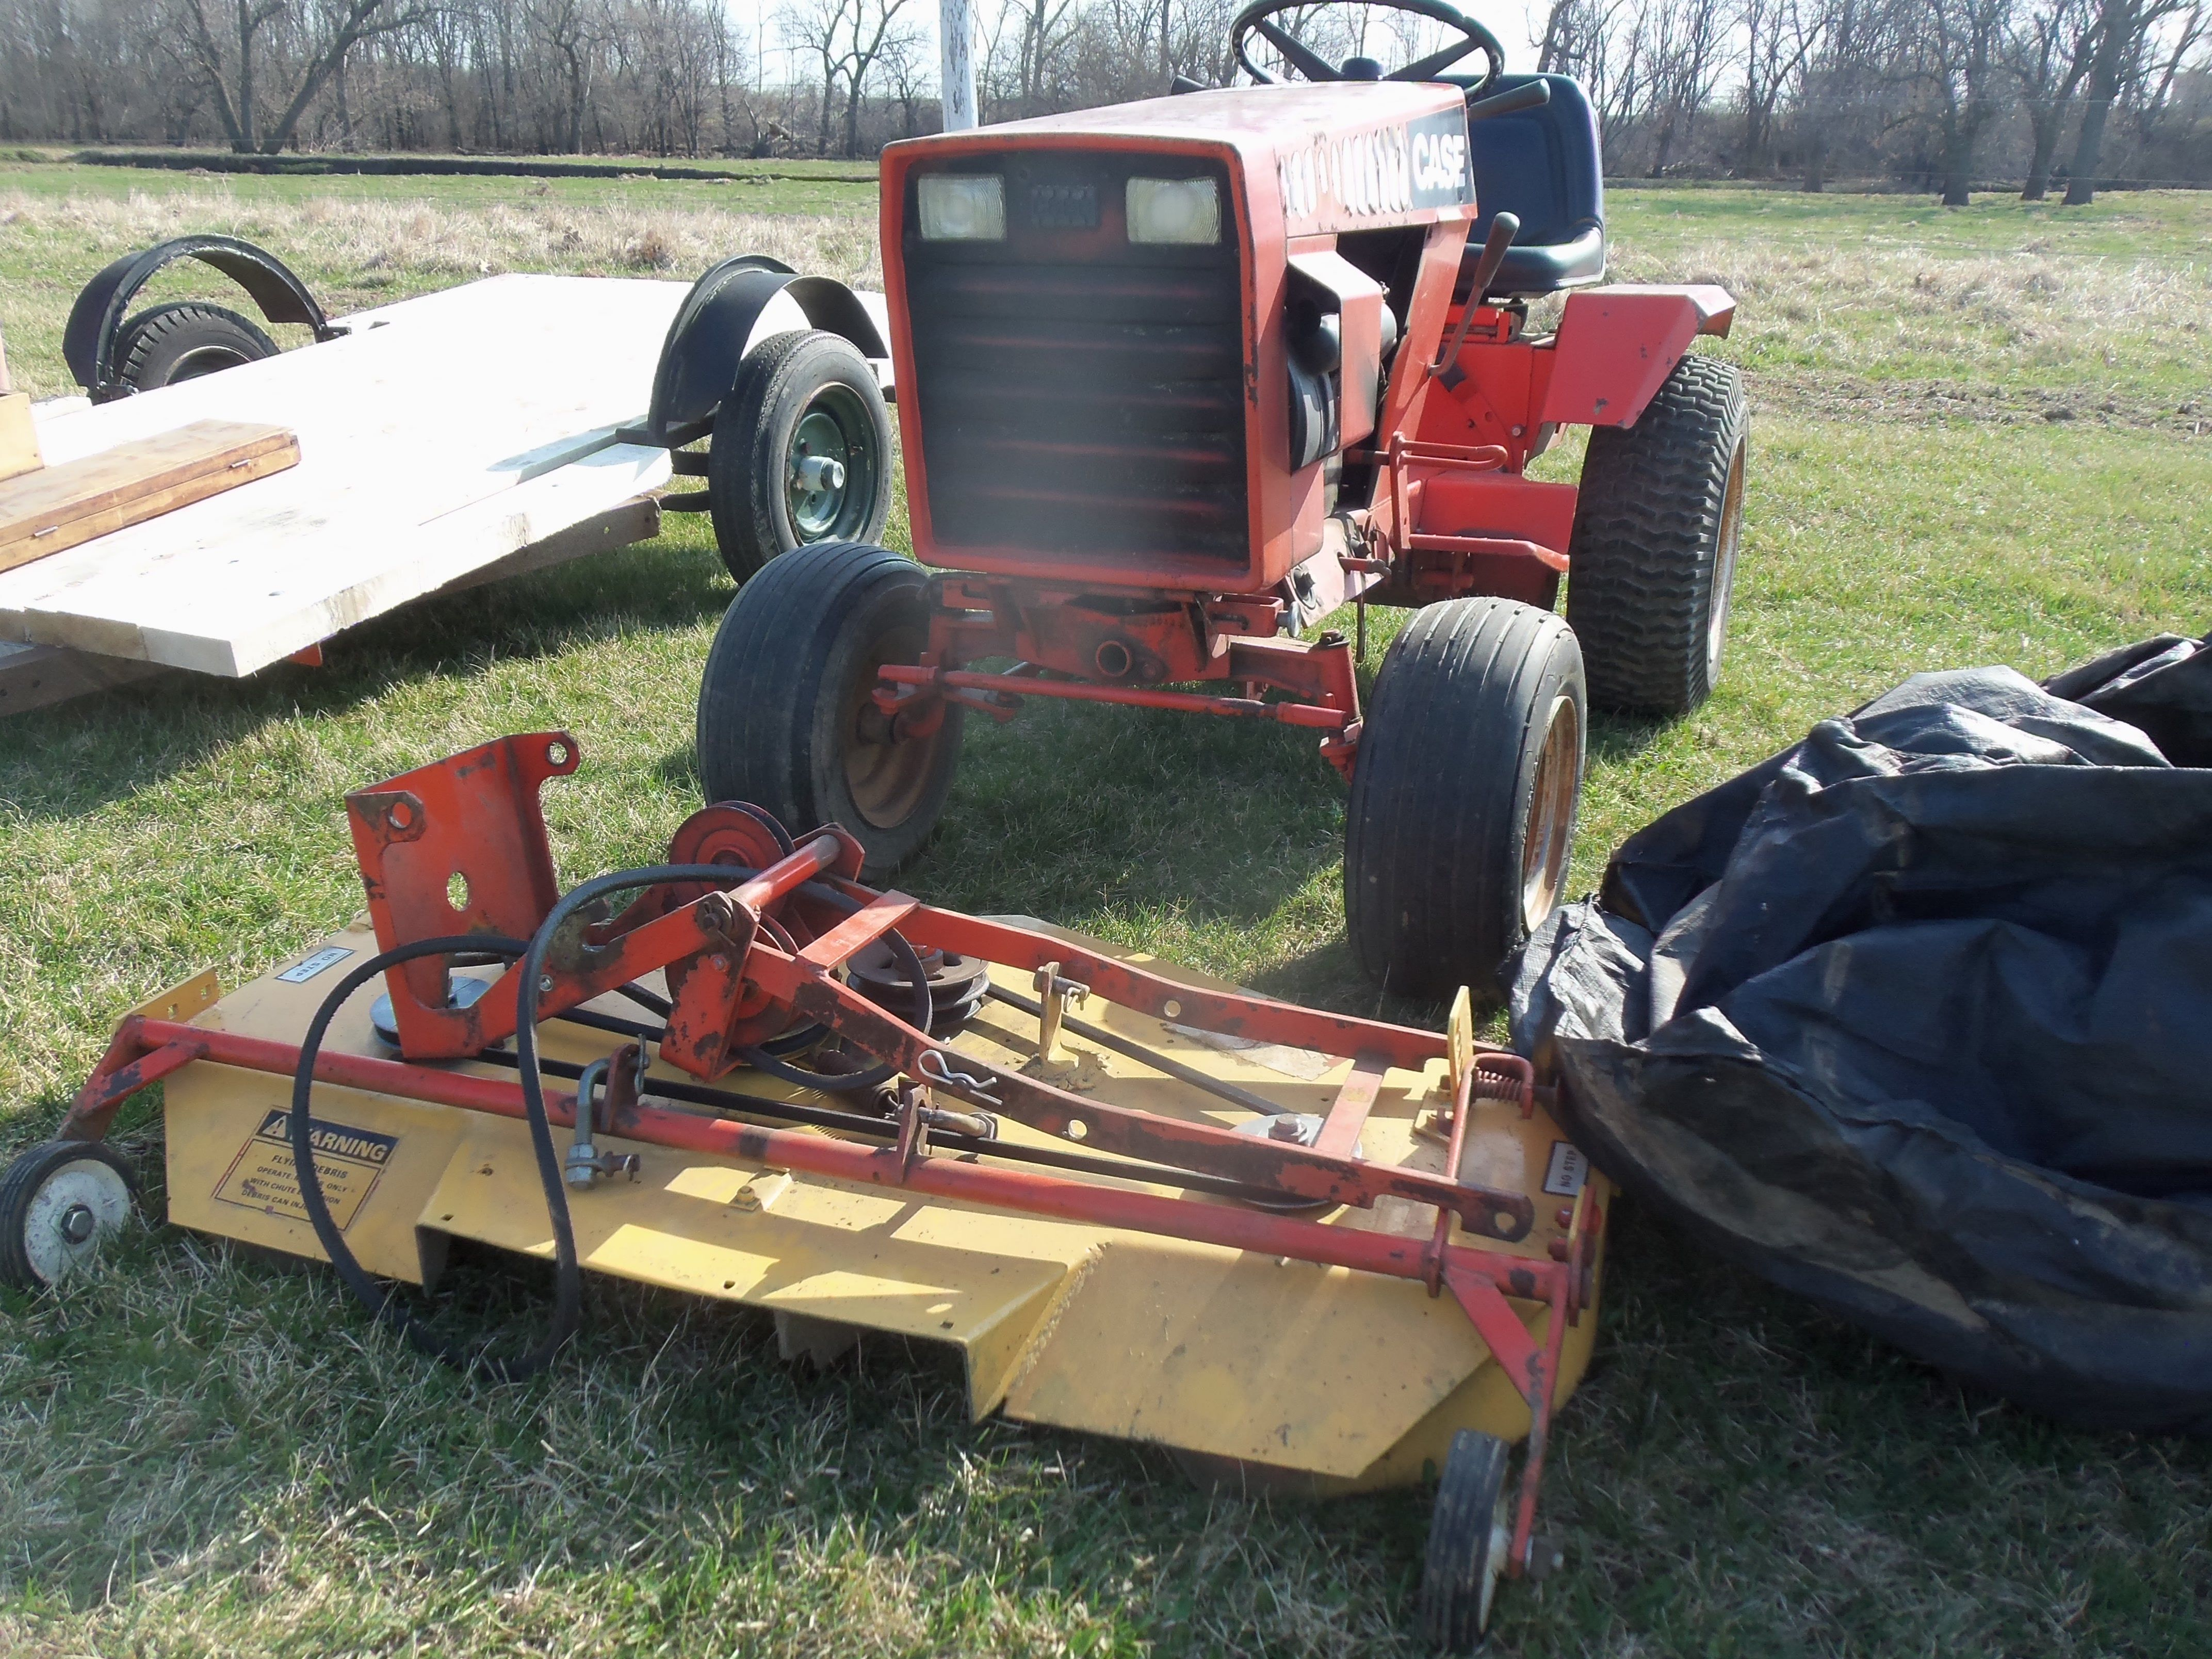 Case 224 lawn &garden tractor with mower